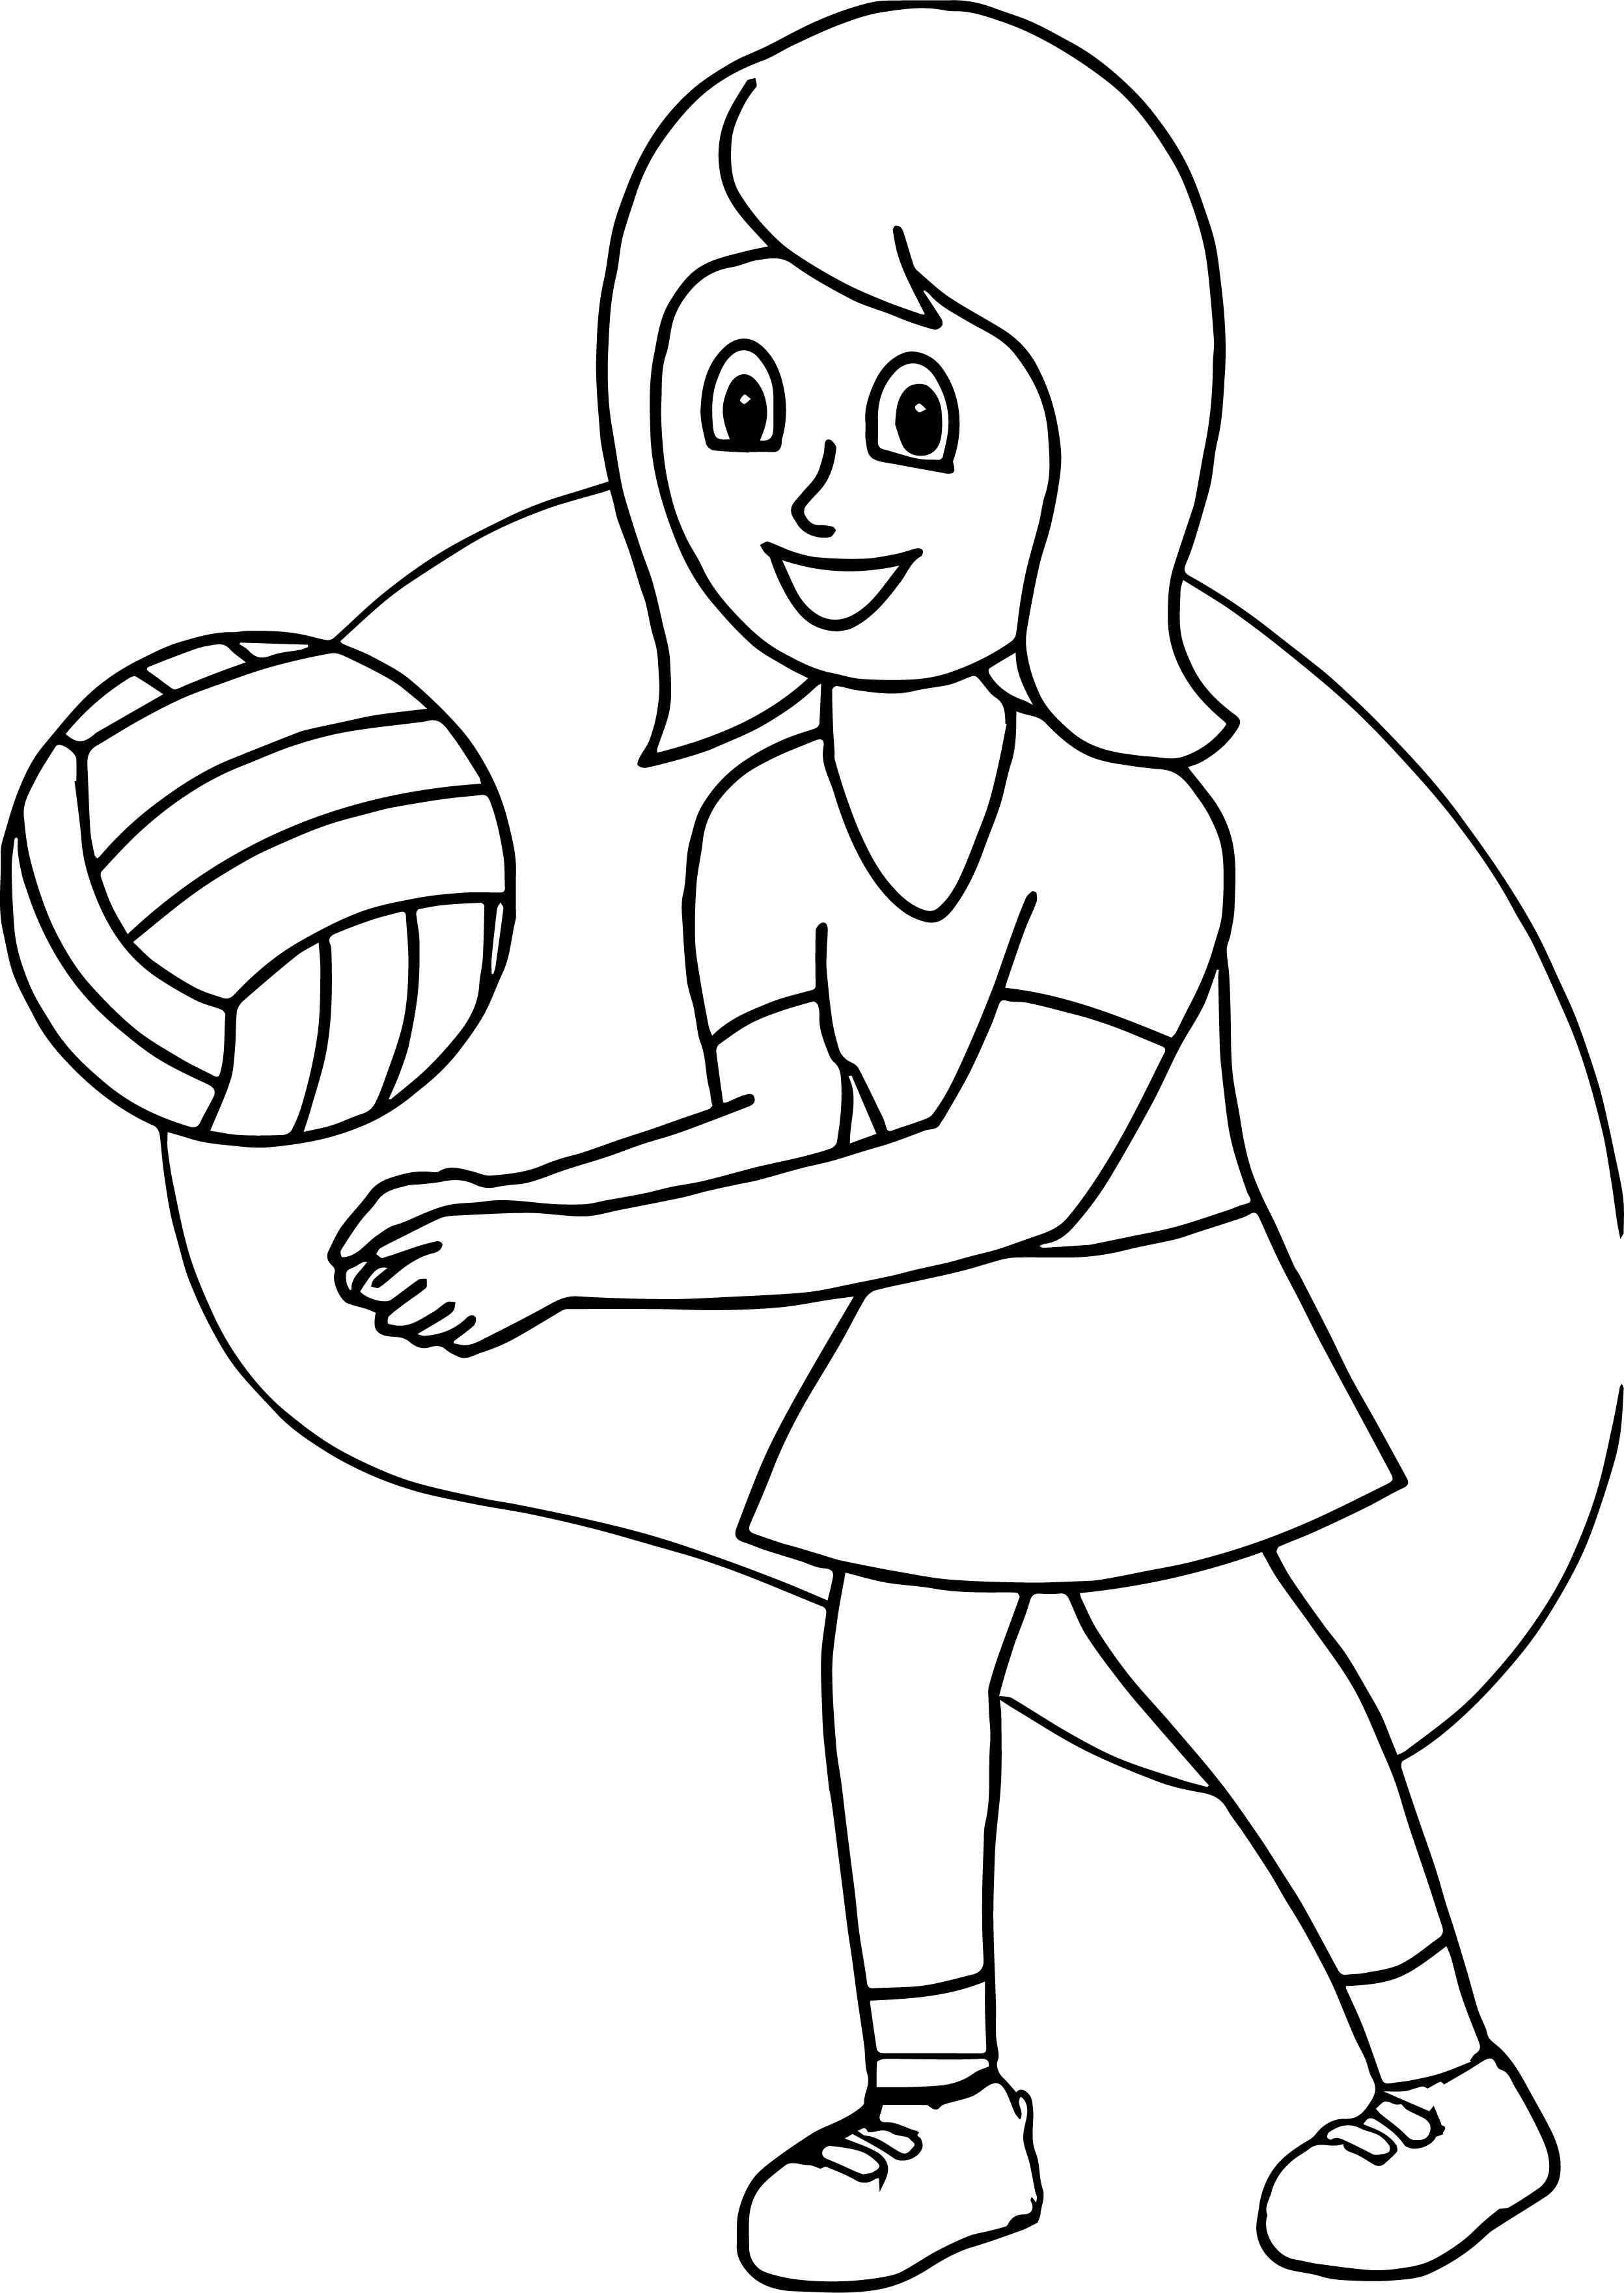 2495x3523 Volleyball Coloring Pages Unique Volleyball Set Coloring Pages